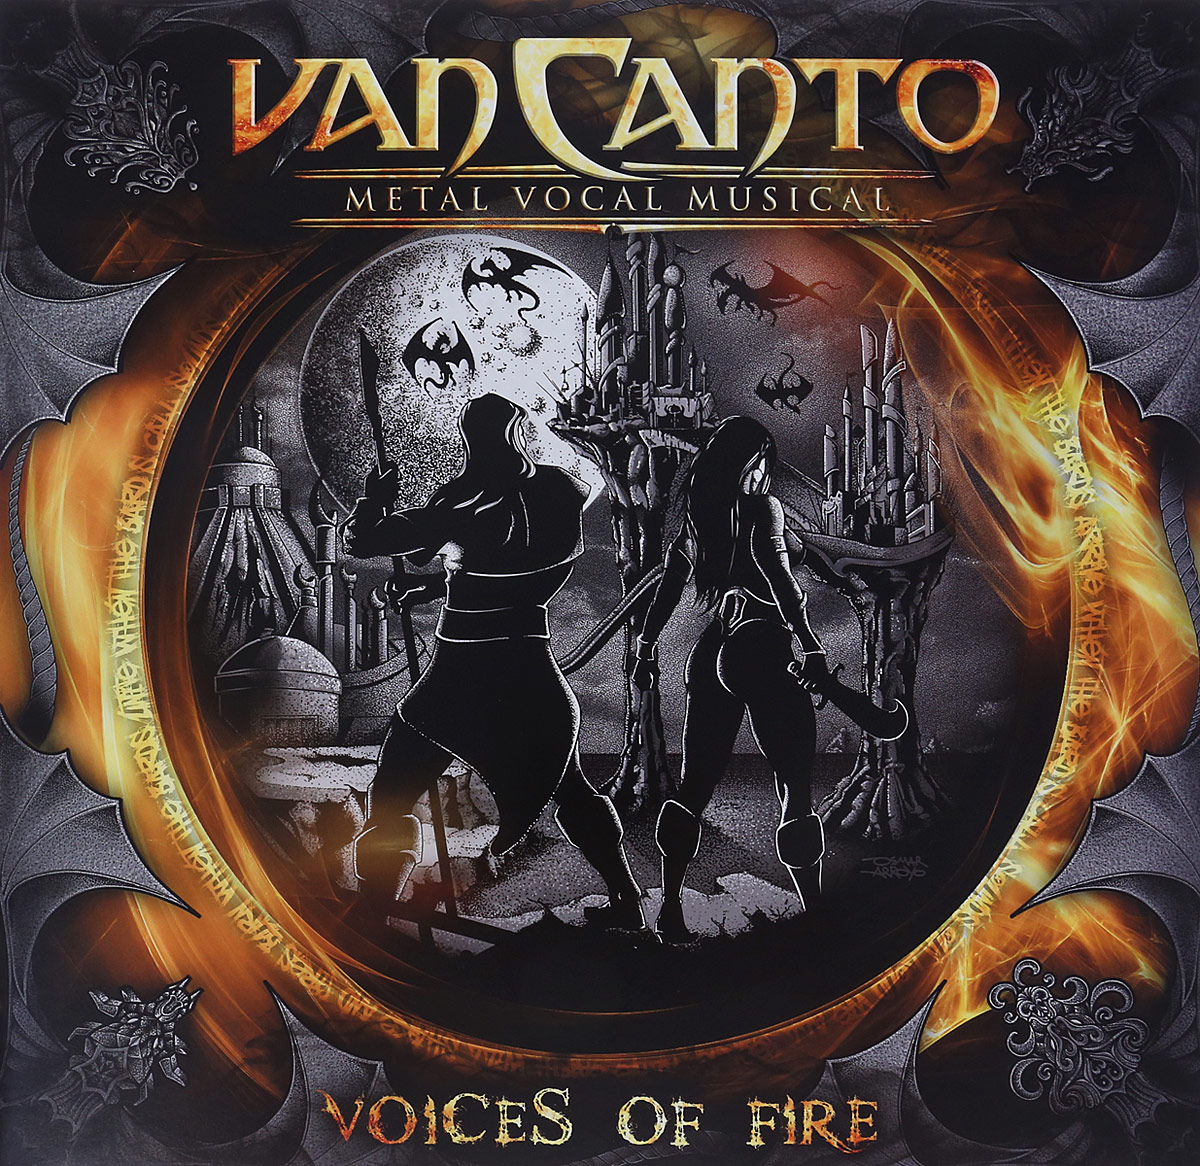 Van Canto Van Canto. Vocal Music. Voices Of Fire (LP)